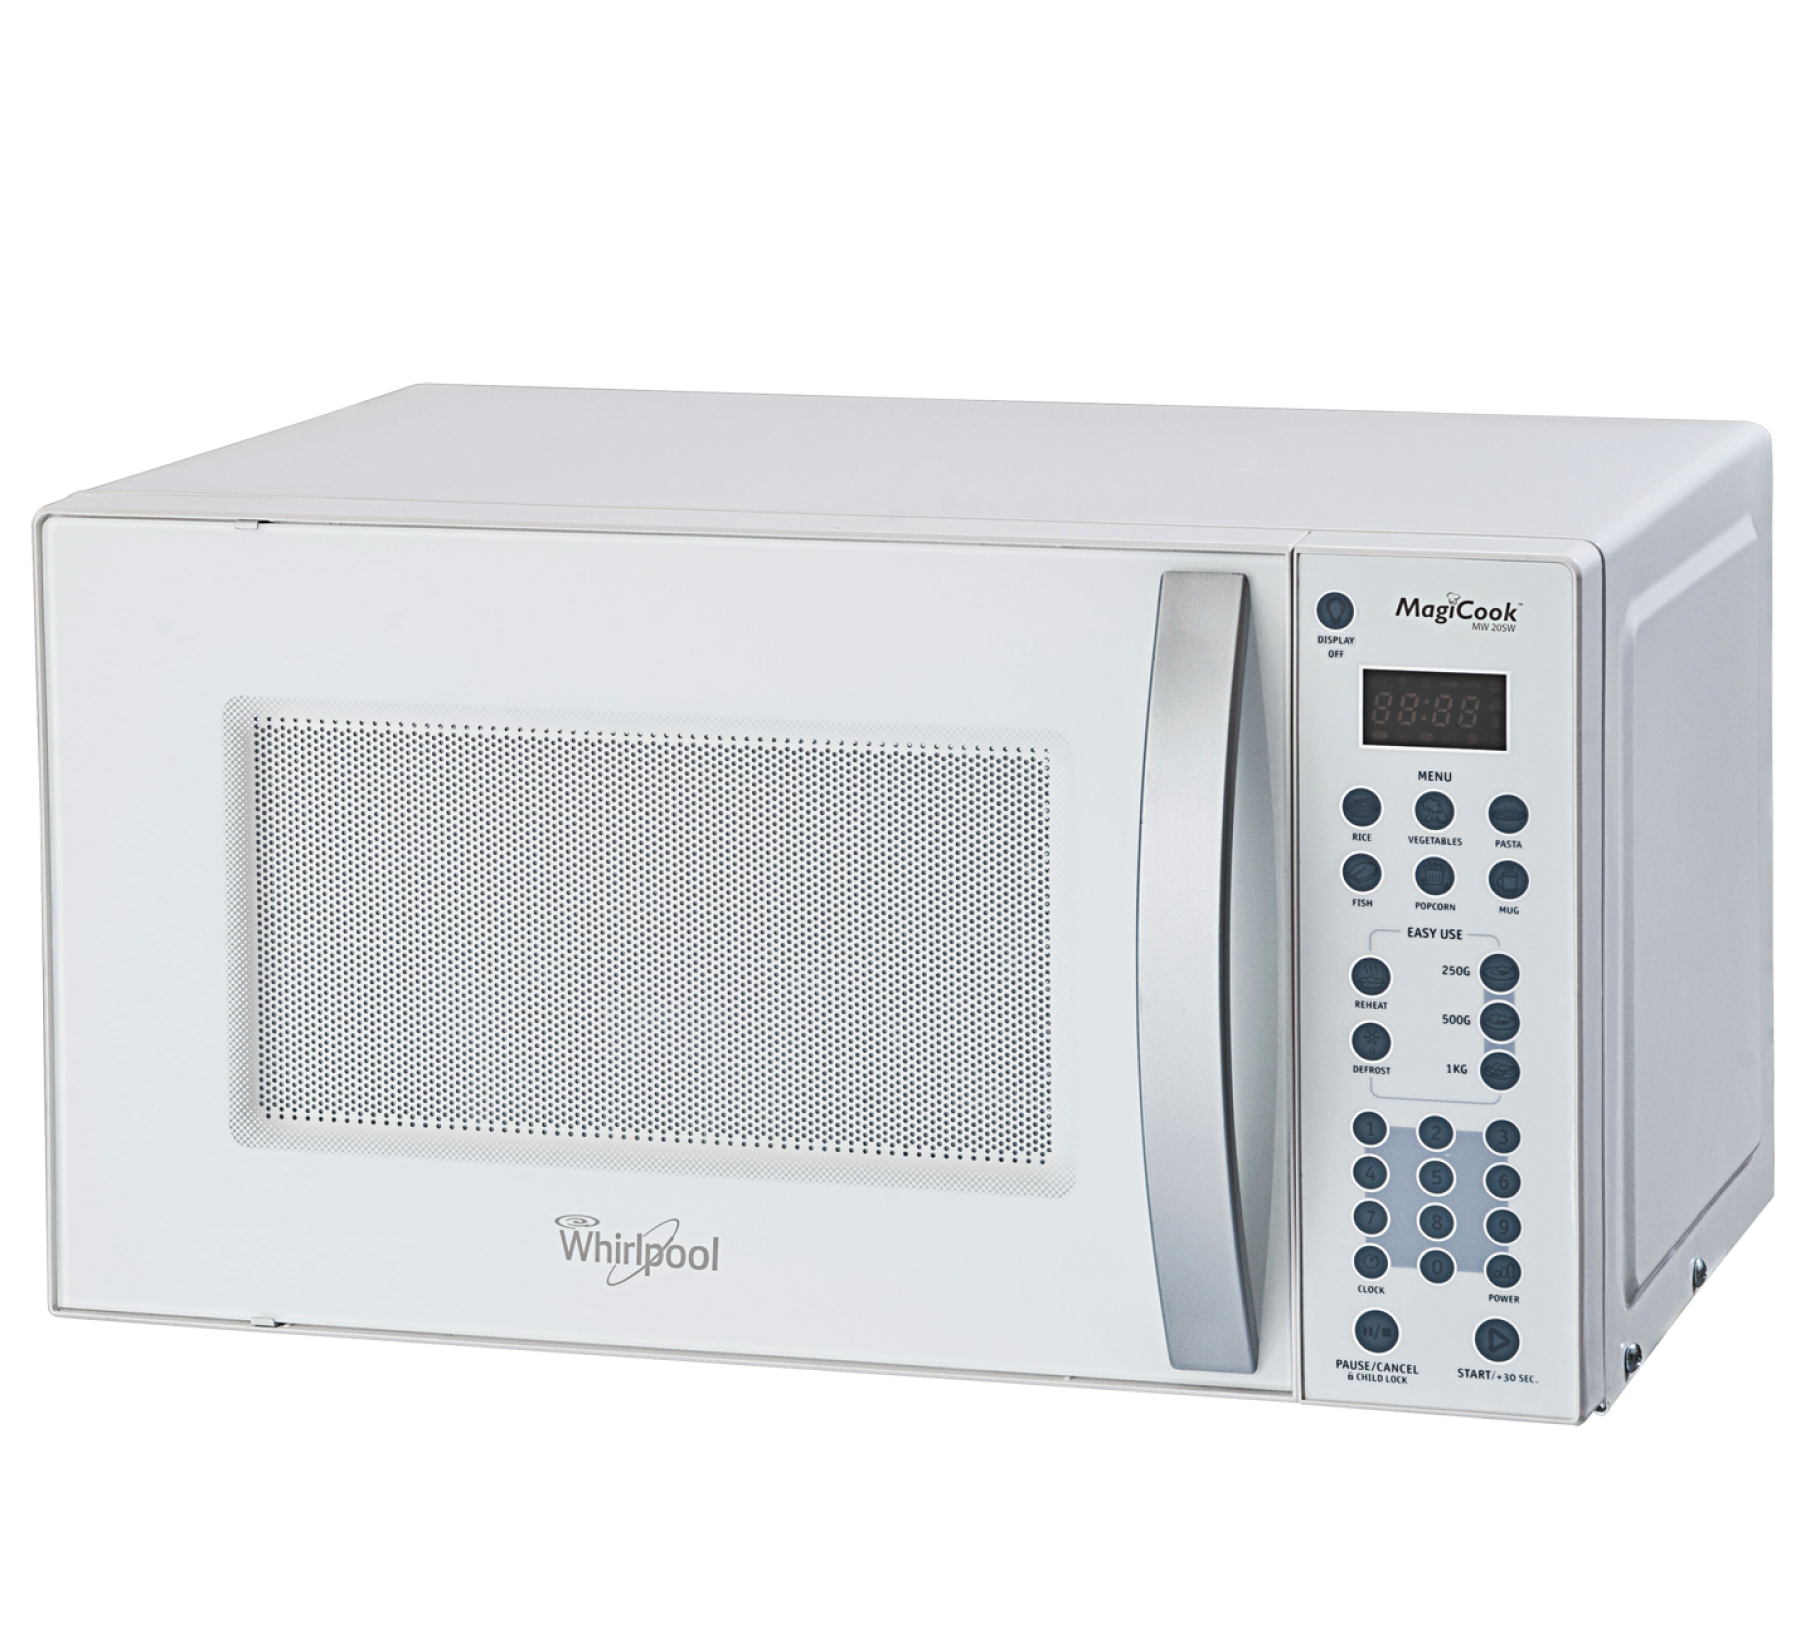 9855502949 By Whirlpool Service Center Microwave Oven In Alawalpur Jalandhar